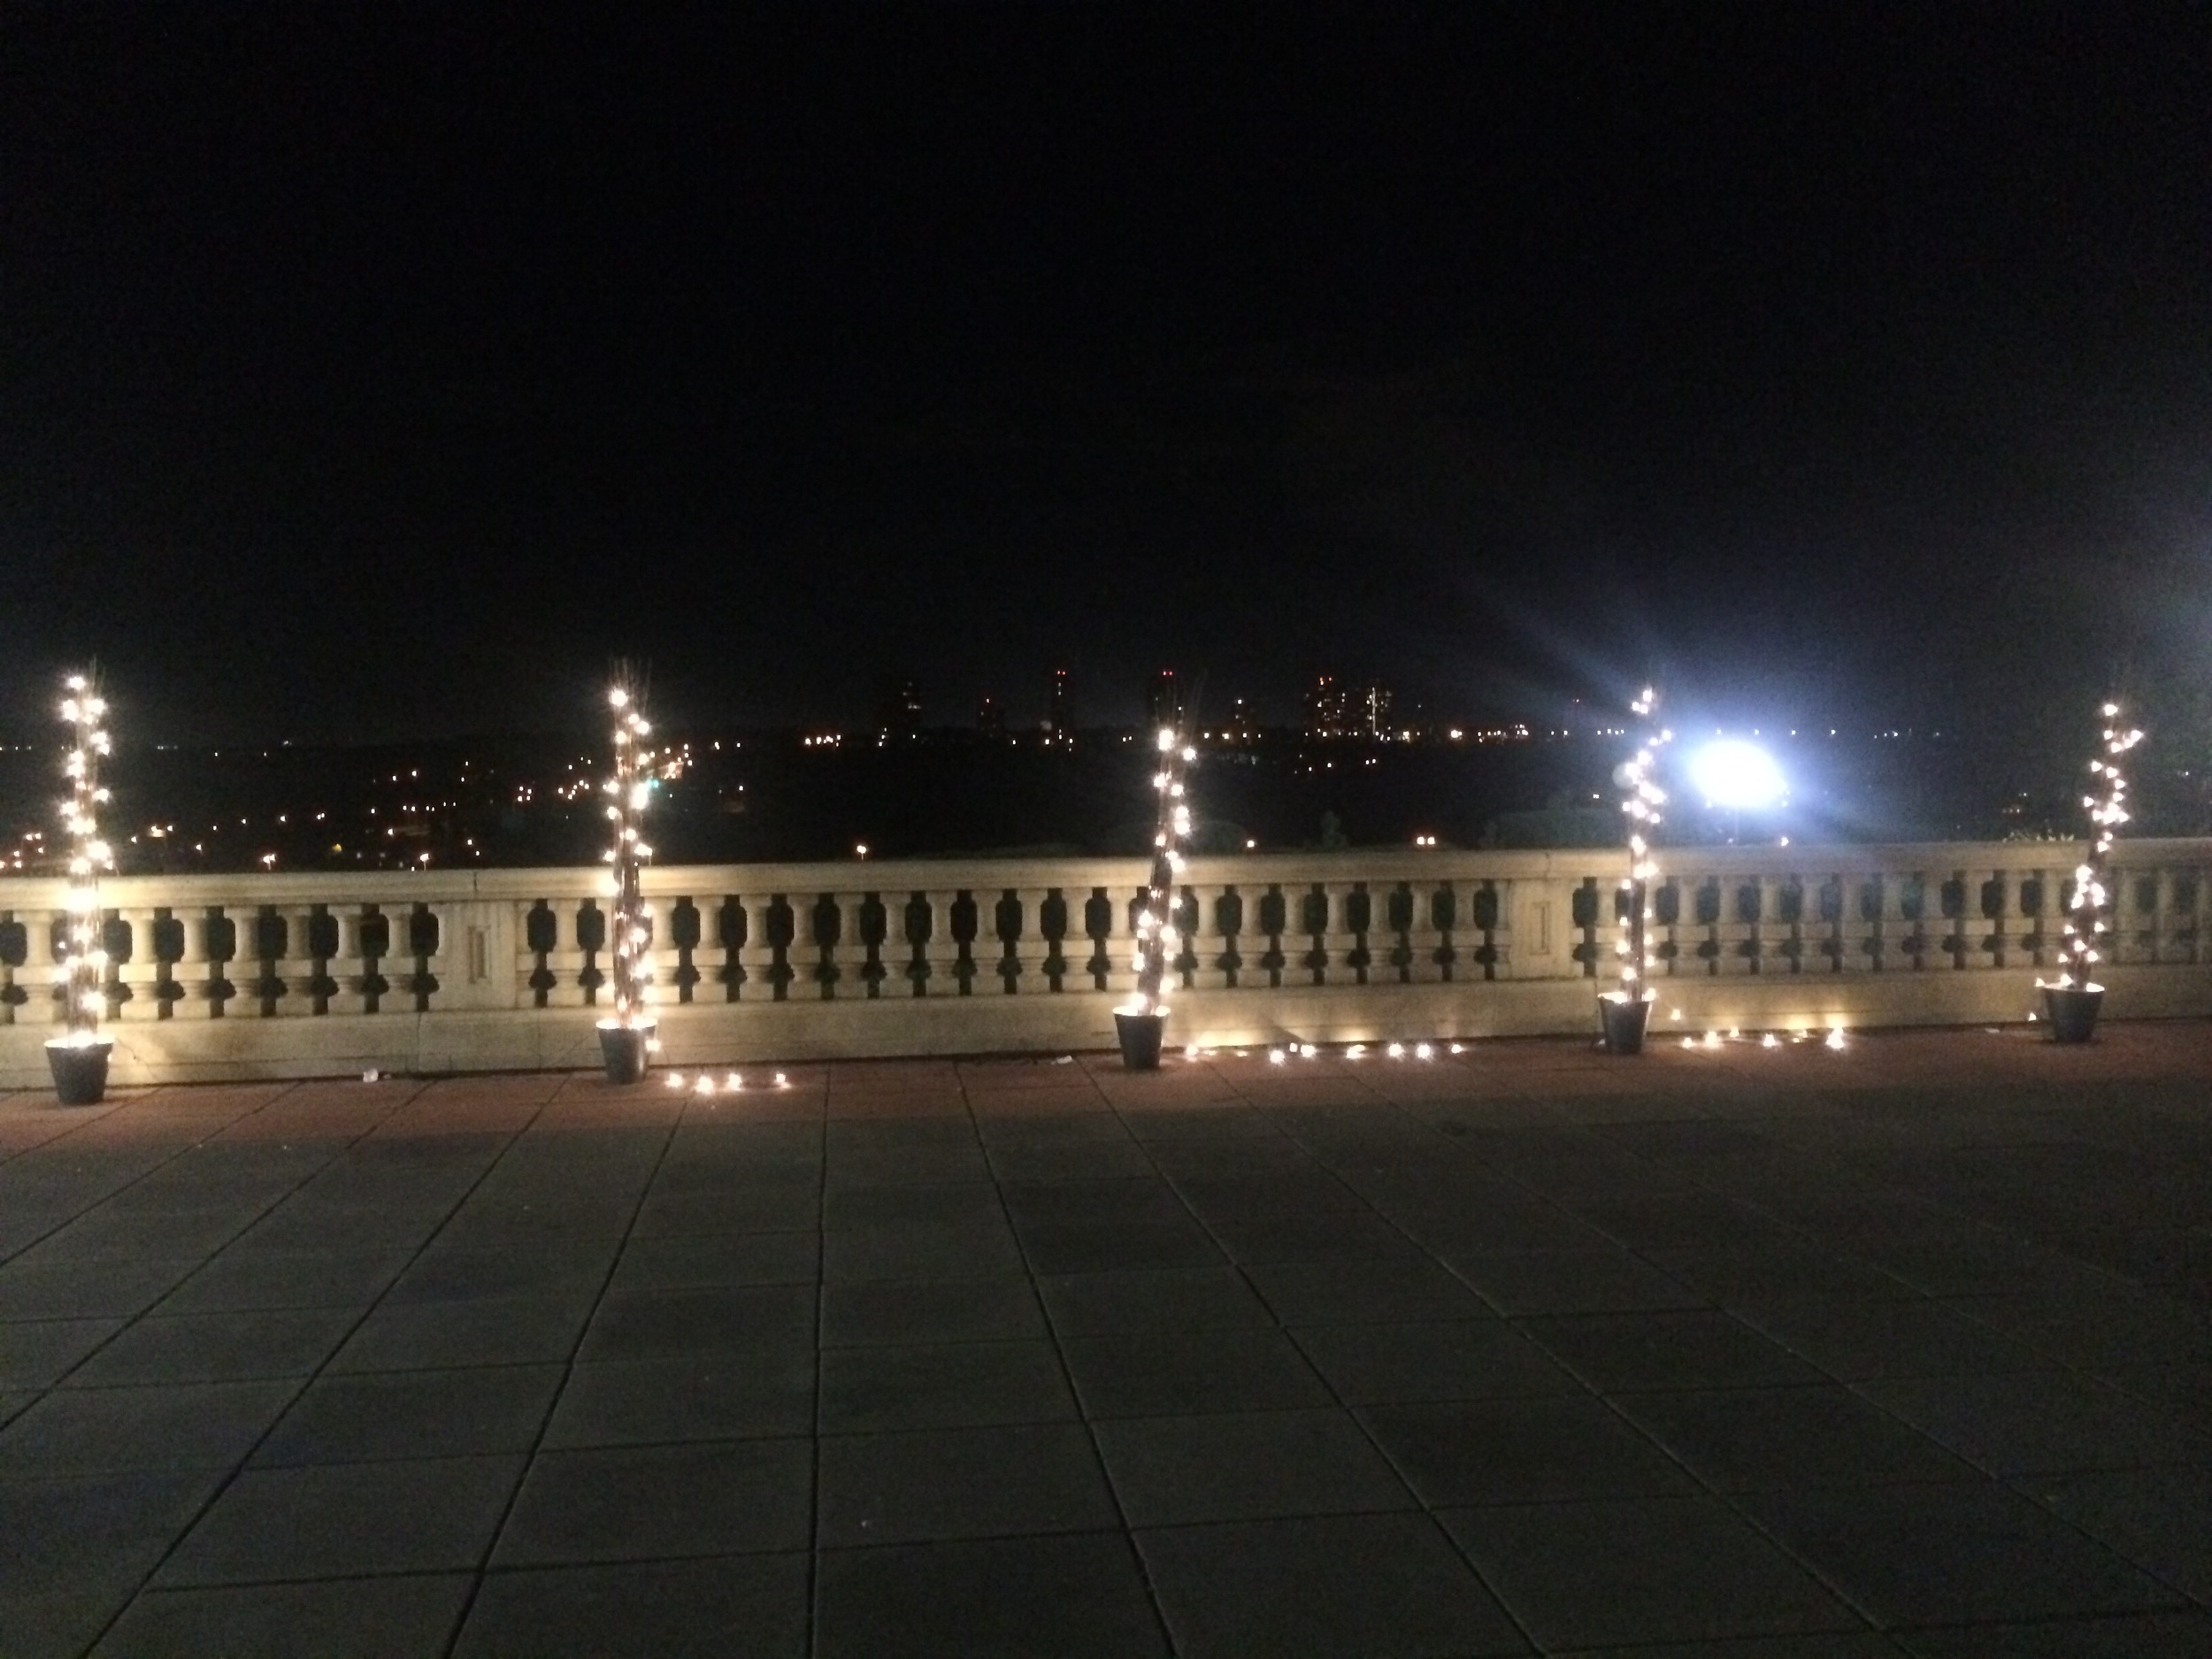 We used 6-feet willow branches and fairy lights to light up the Empire Ballroom's terrace.